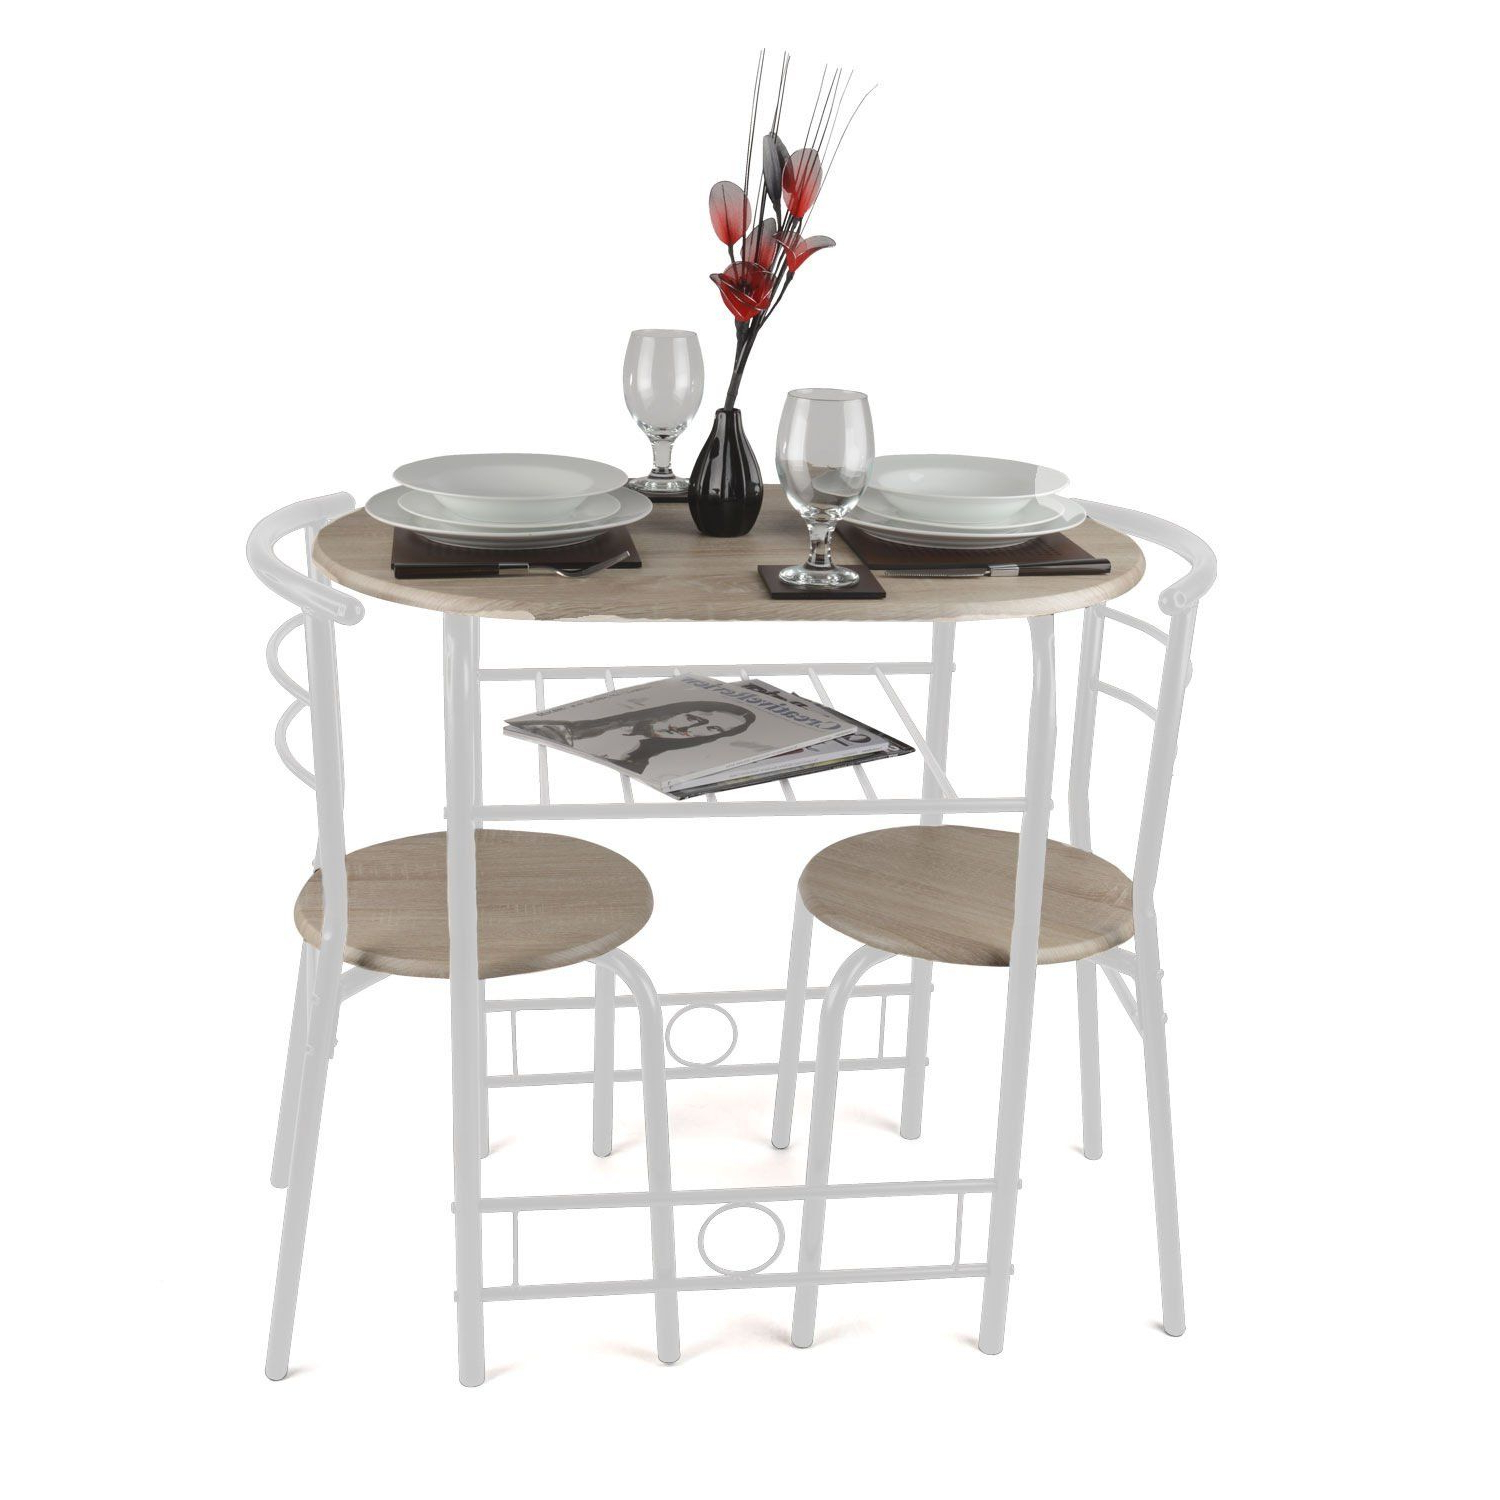 Recent Christow 3 Piece Breakfast Dining Set White: Amazon.co (View 2 of 25)